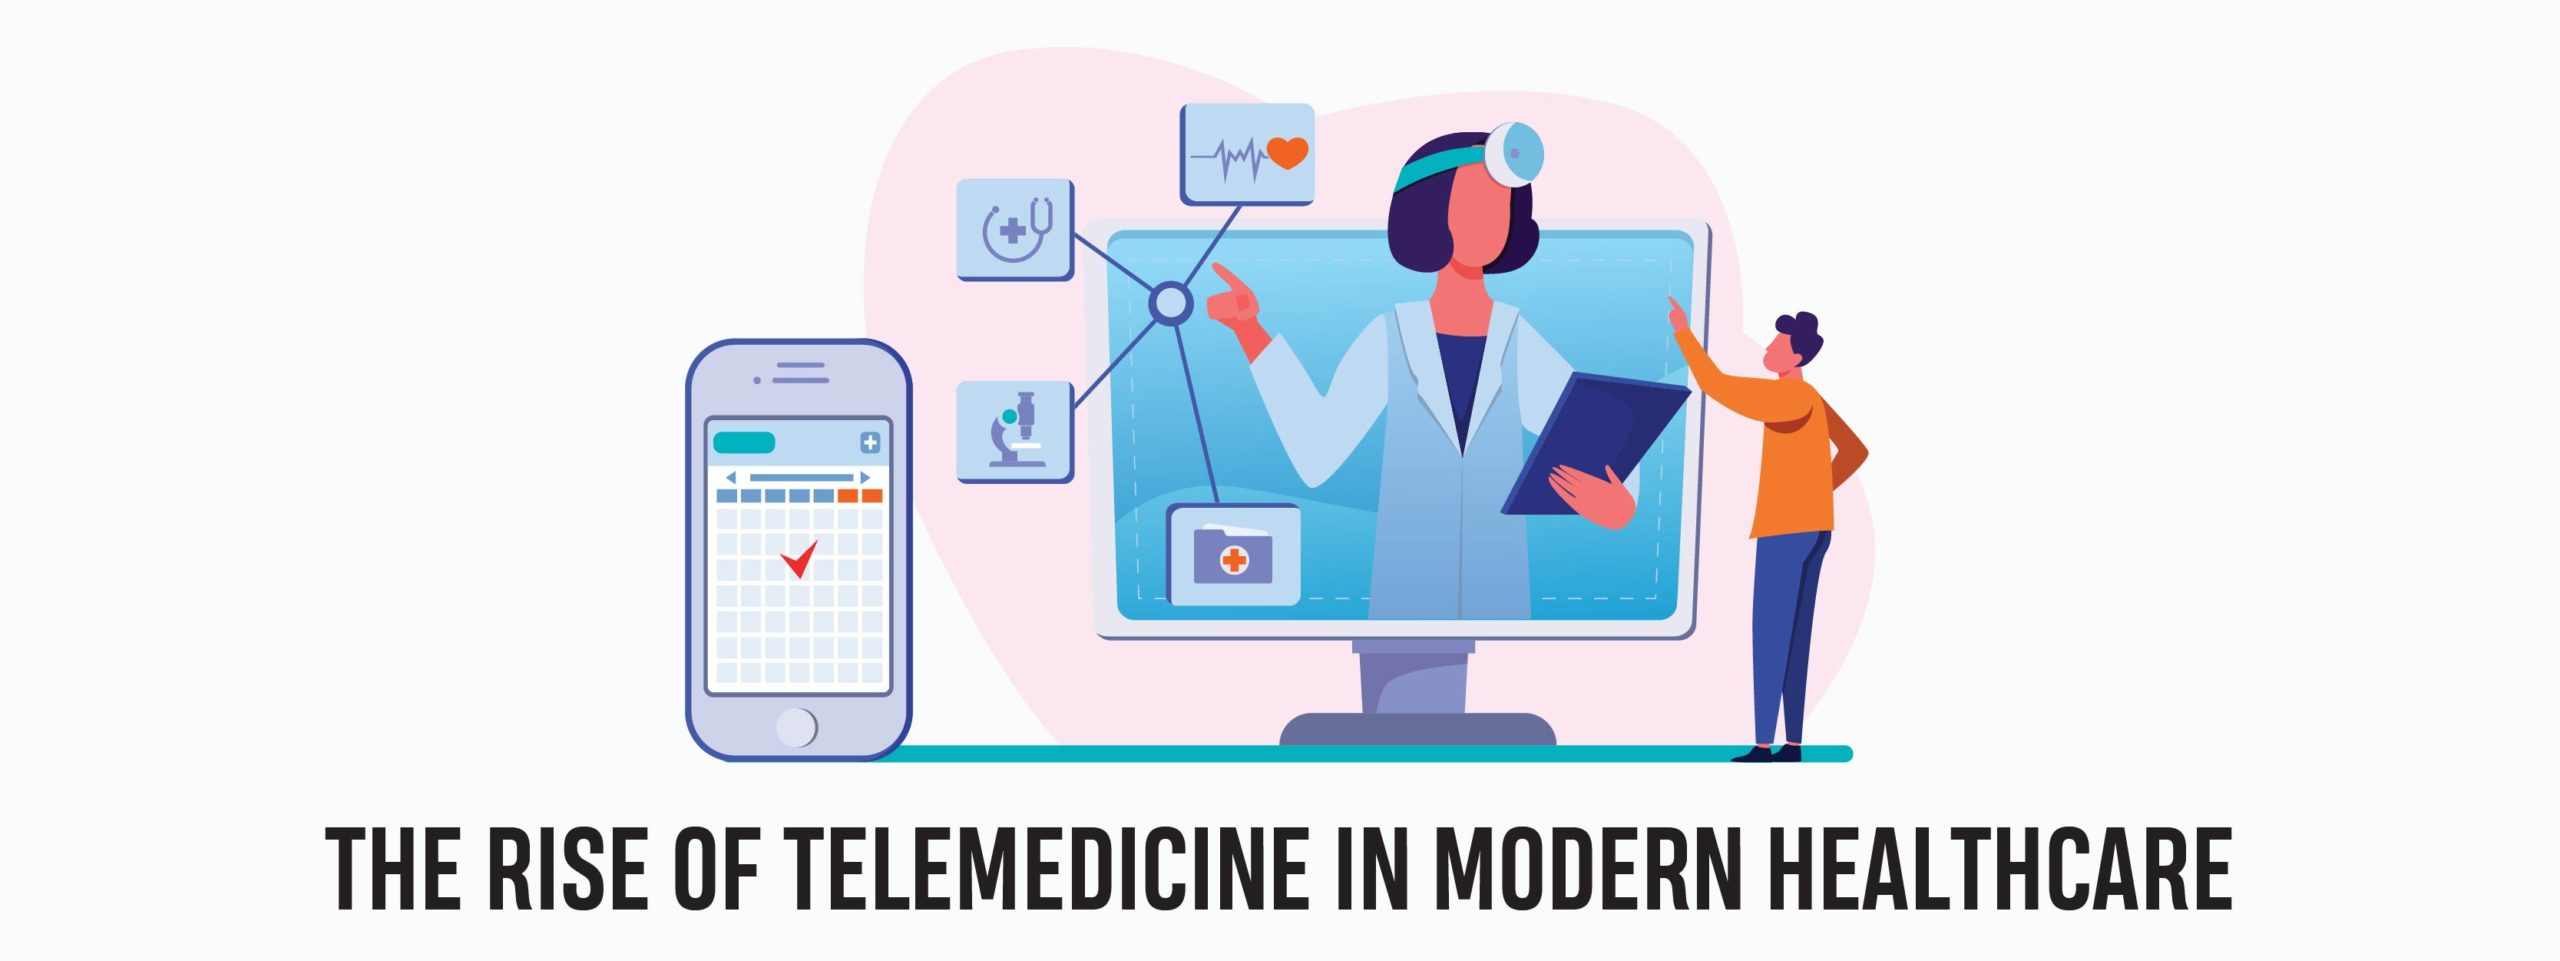 THE RISE OF TELEMEDICINE IN MODERN HEALTHCARE